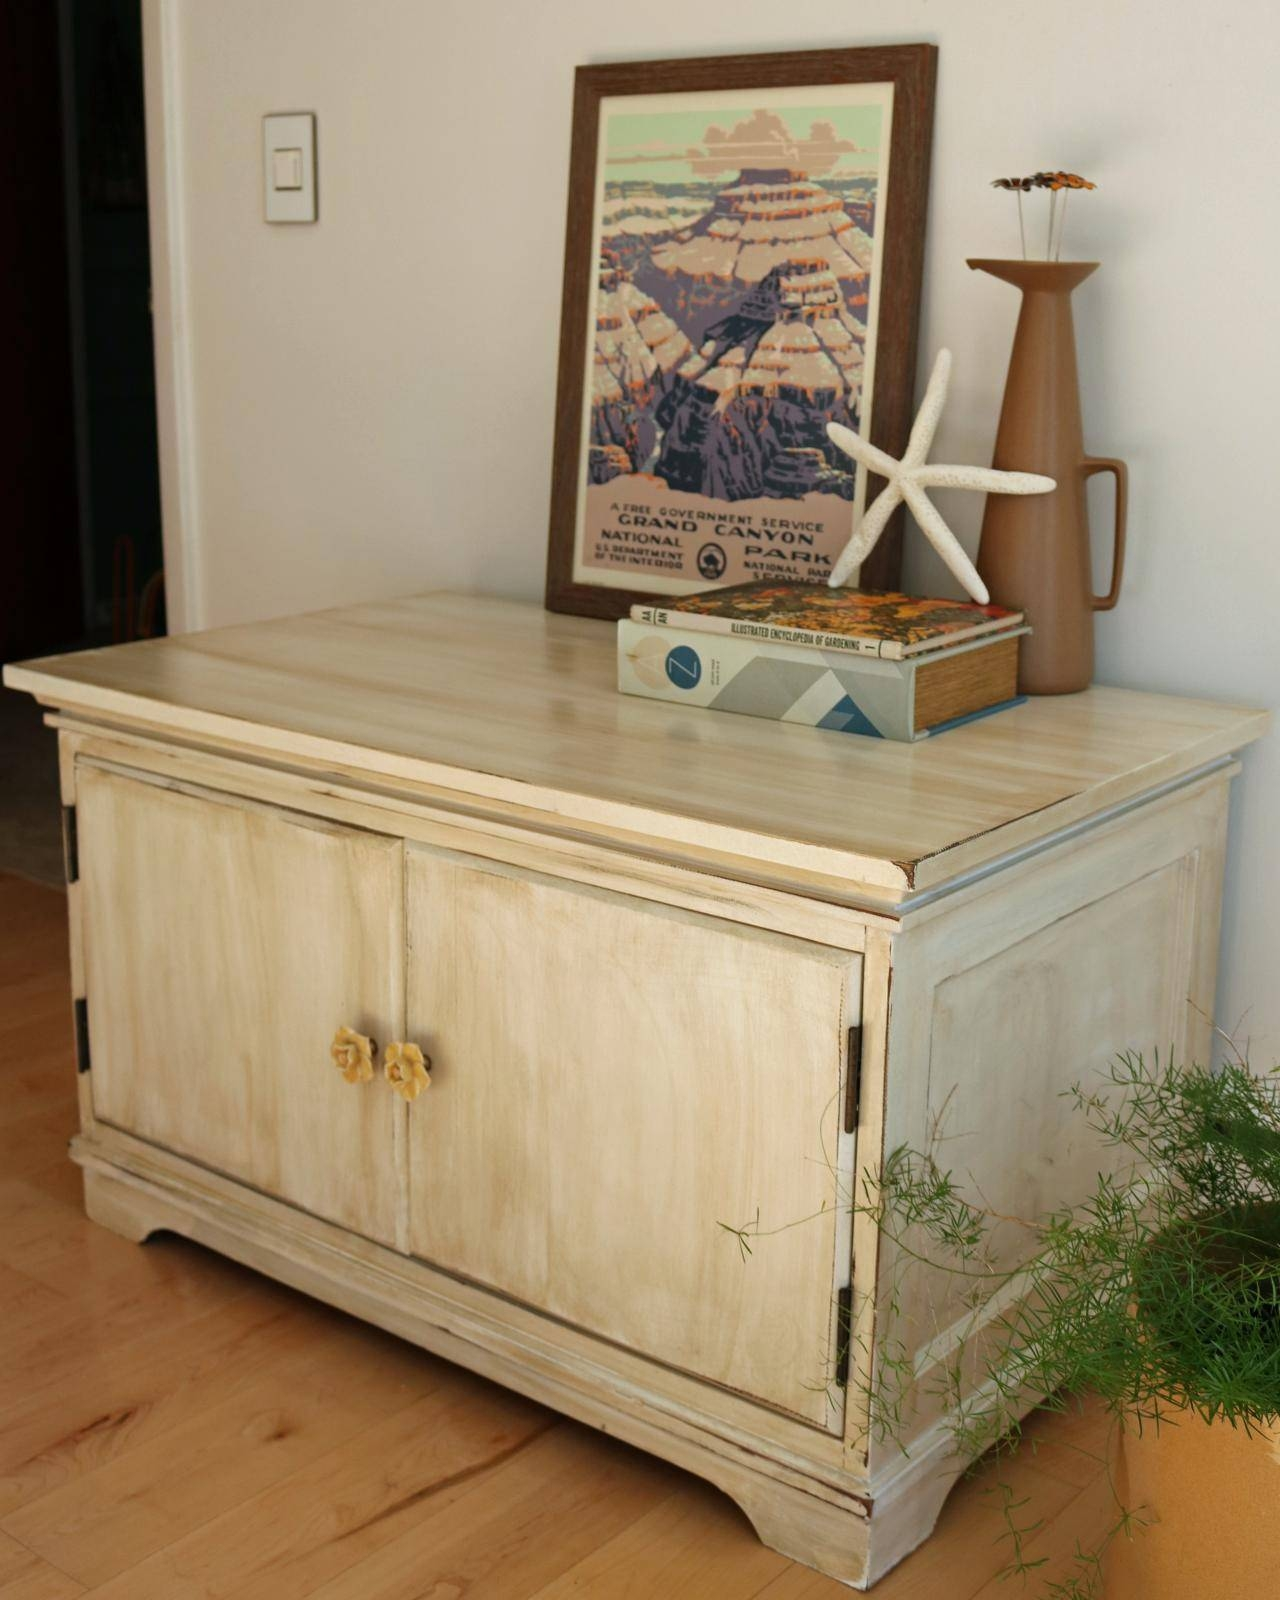 How To Distress Furniture | How Tos | Diy Within Distressed Wood Sideboard (View 9 of 20)